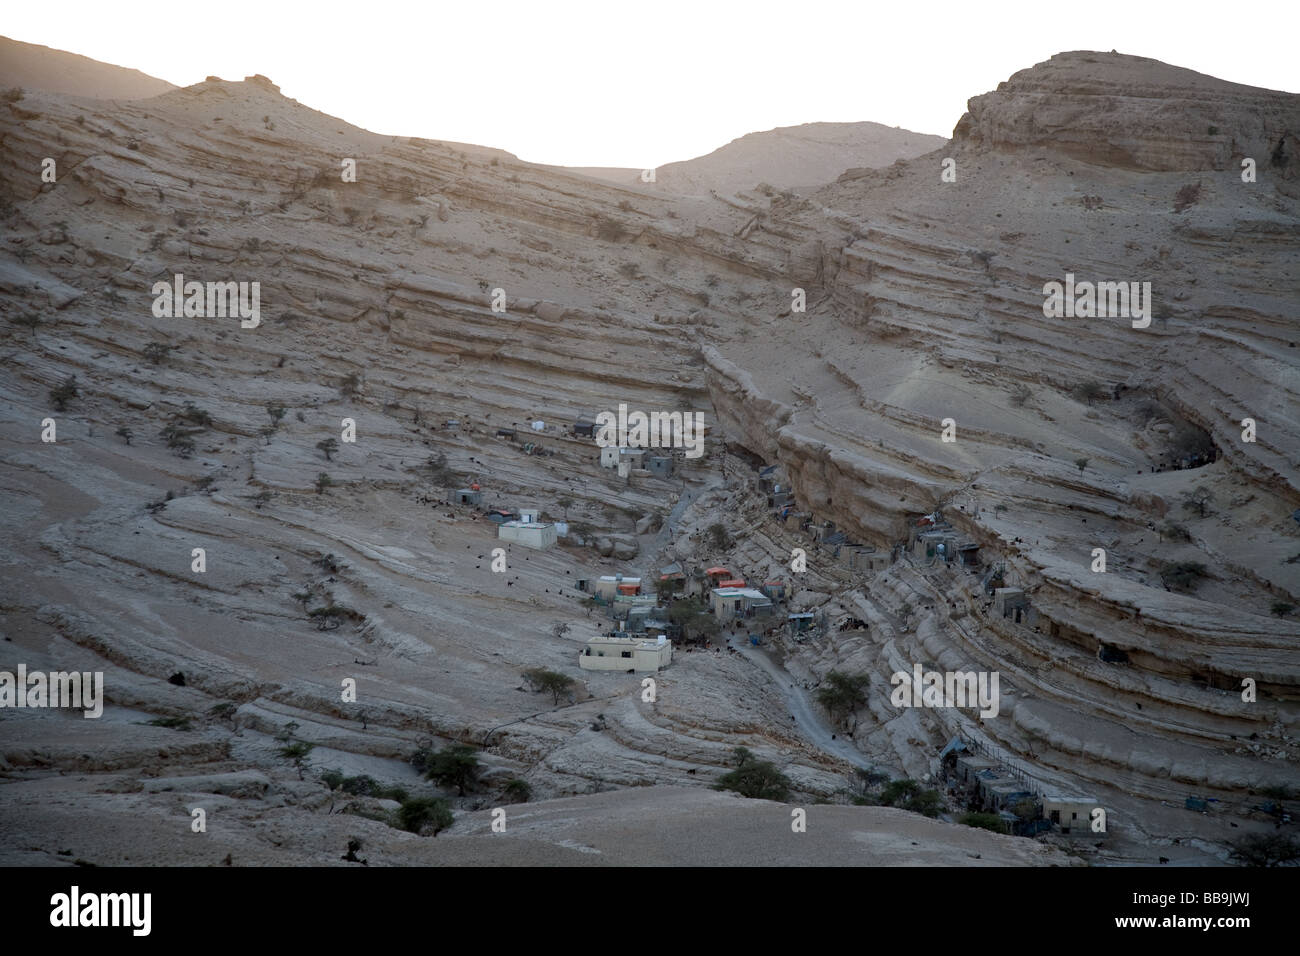 Qoran, a small remote village with few houses inside the karst formation of the Selmeh Selma Salmah Plateau Stock Photo